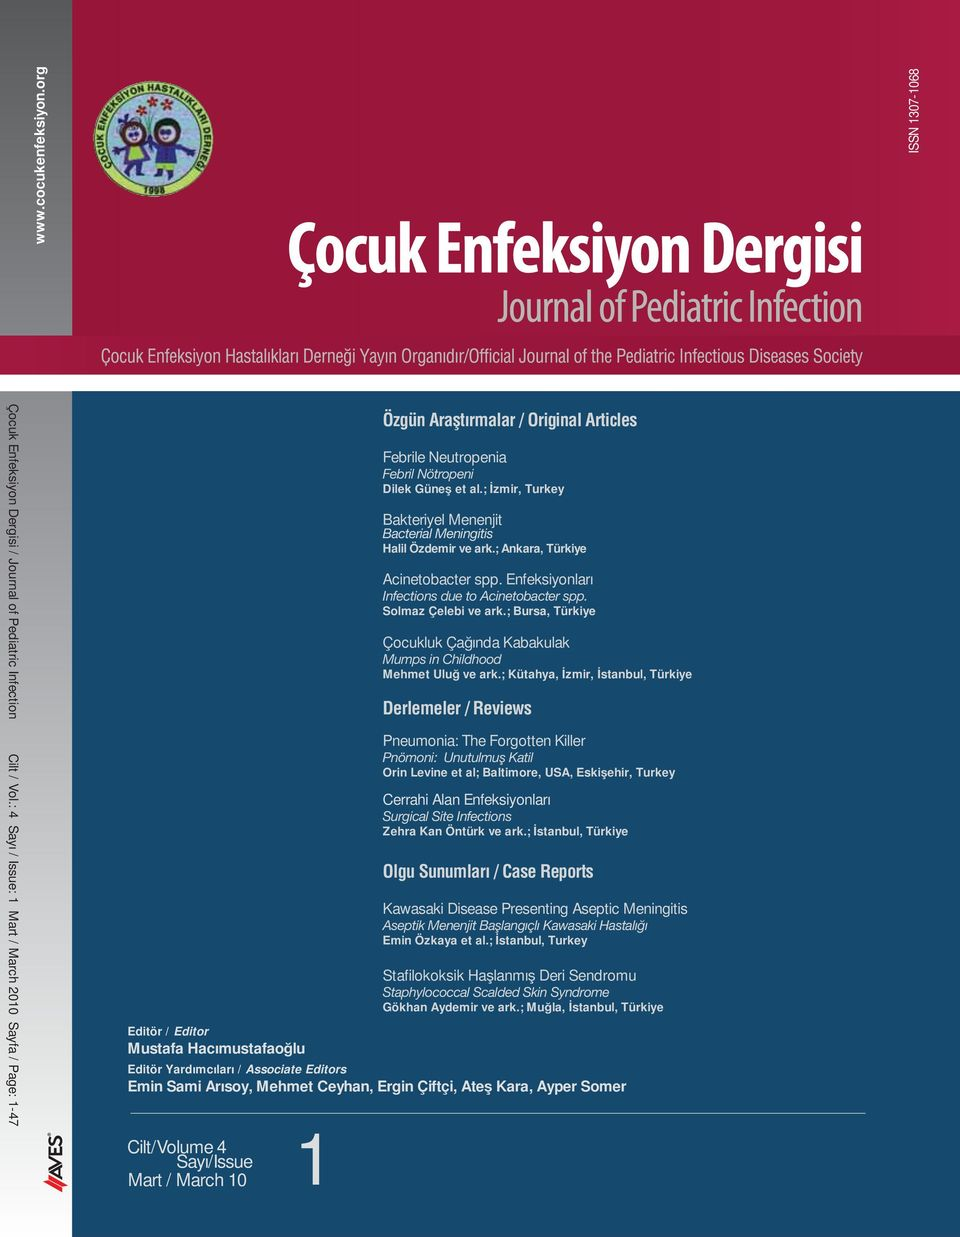 Somer Cilt/Volume 4 1 Say /Issue Mart / March 10 Özgün Araştırmalar / Original Articles Febrile Neutropenia Febril Nötropeni Dilek Güne et al.